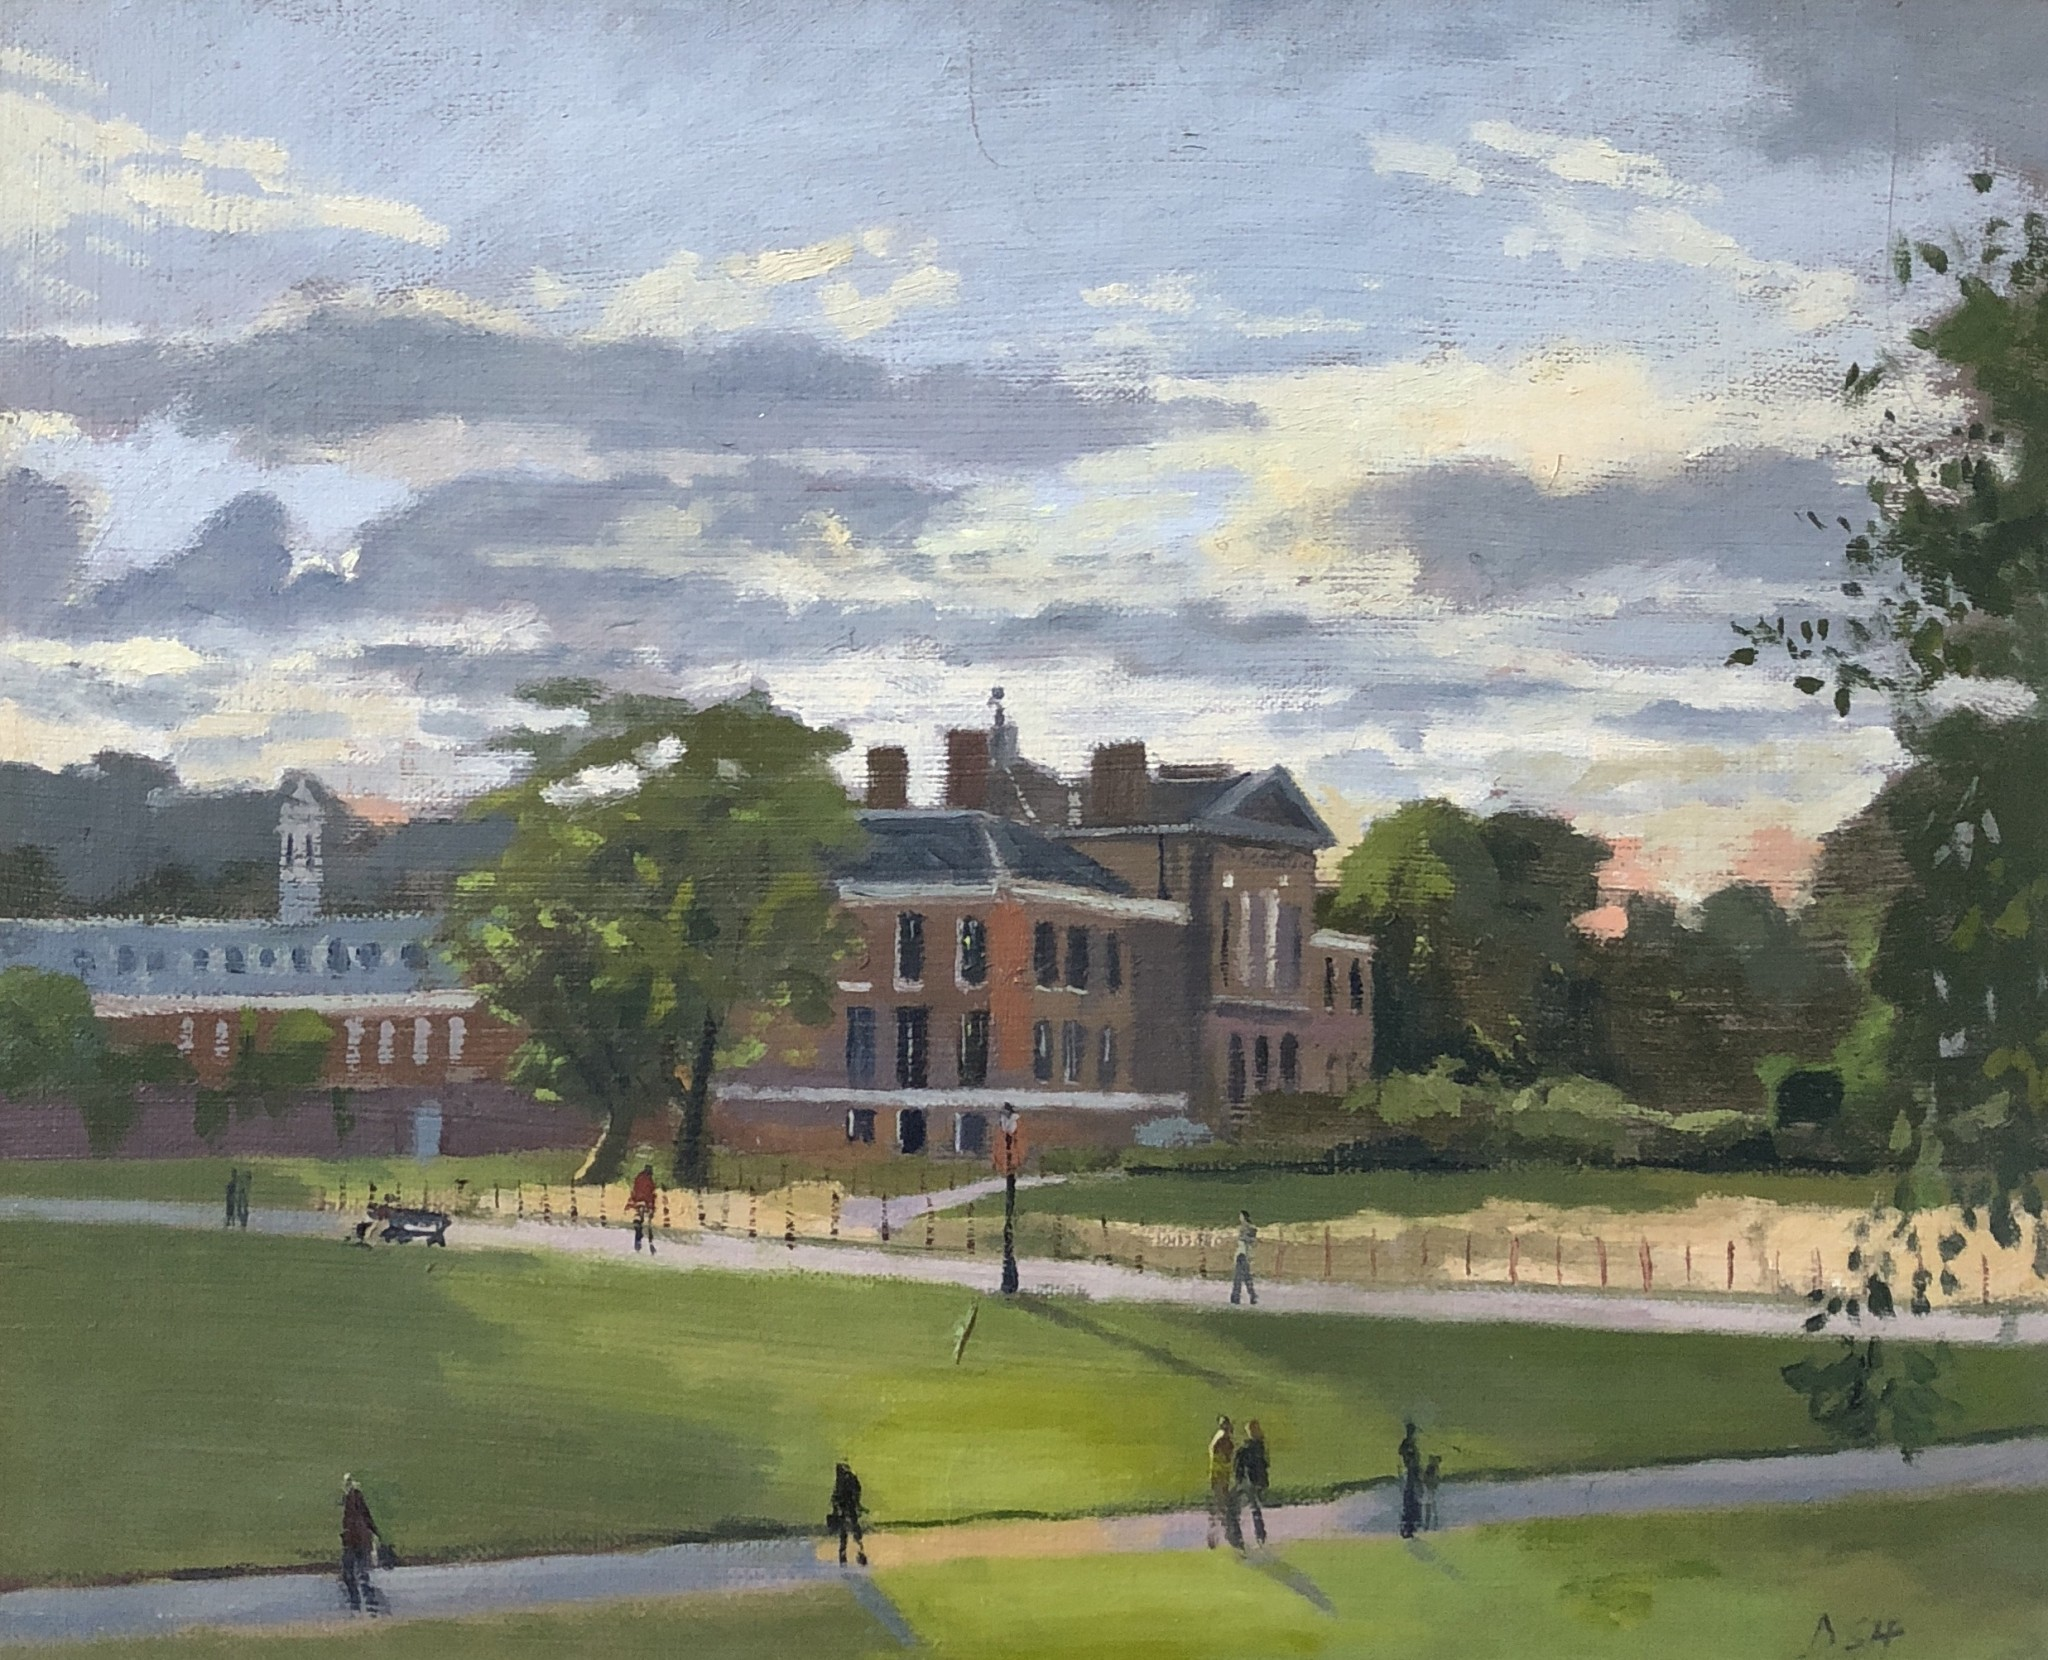 Evening light, Kensington Palace